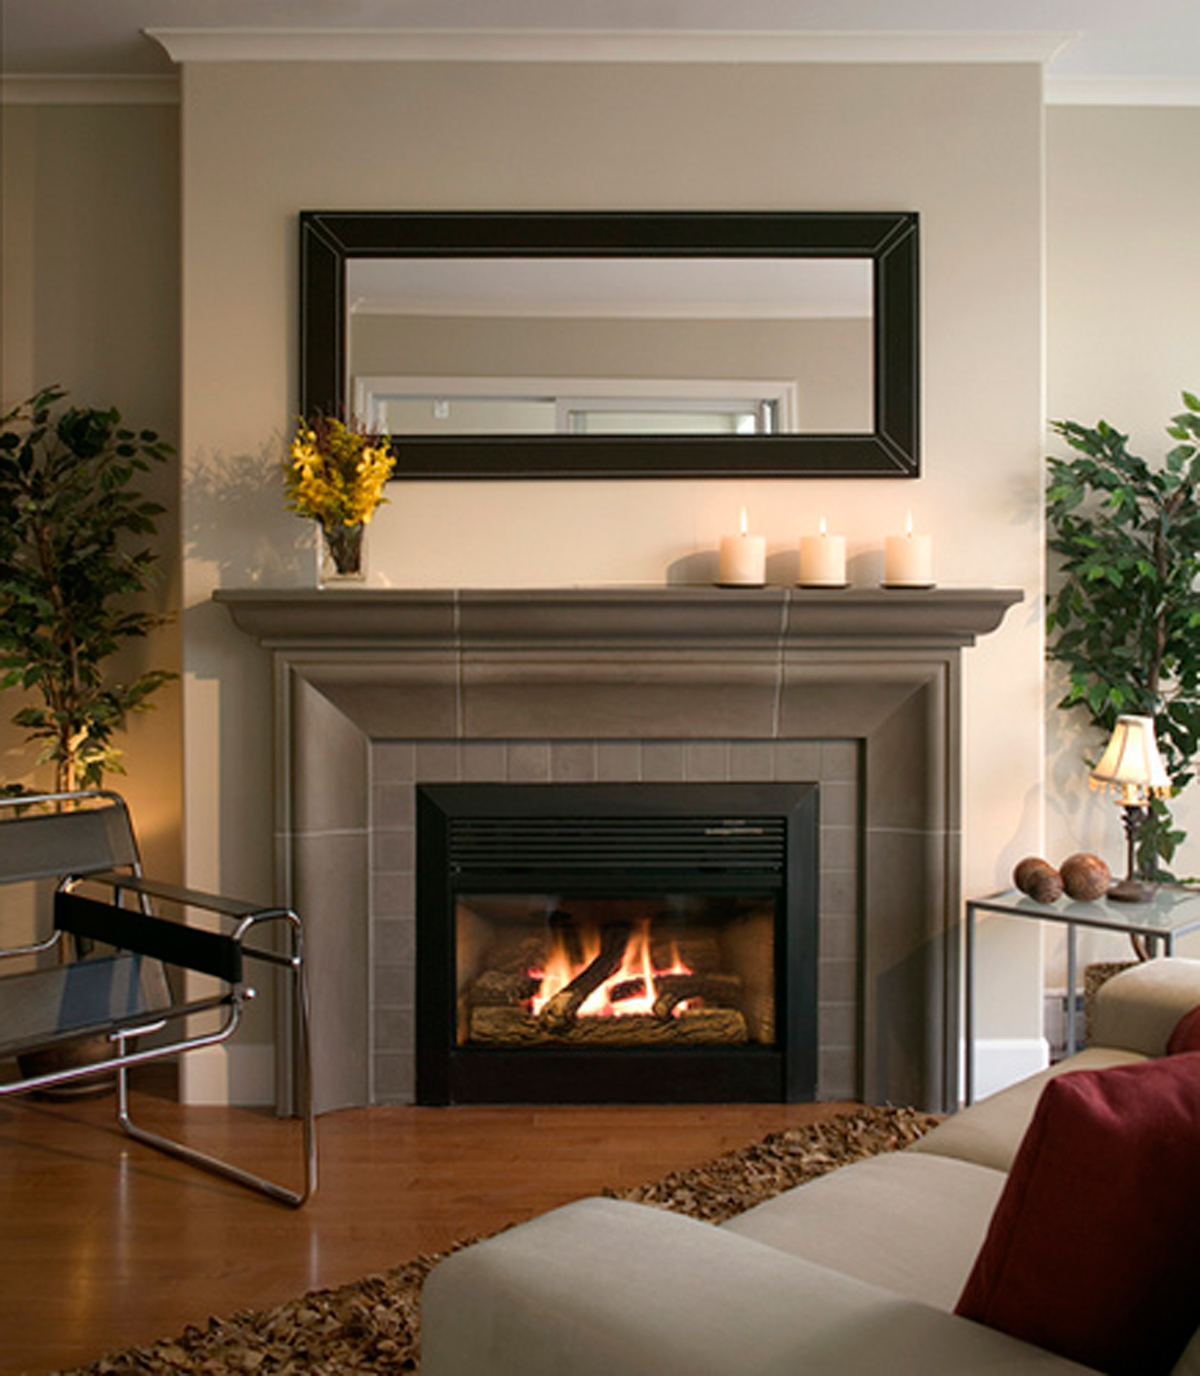 Gas Fireplace Design Ideas additional Gas Fireplace Designs With Fascinating Decorations Ideas